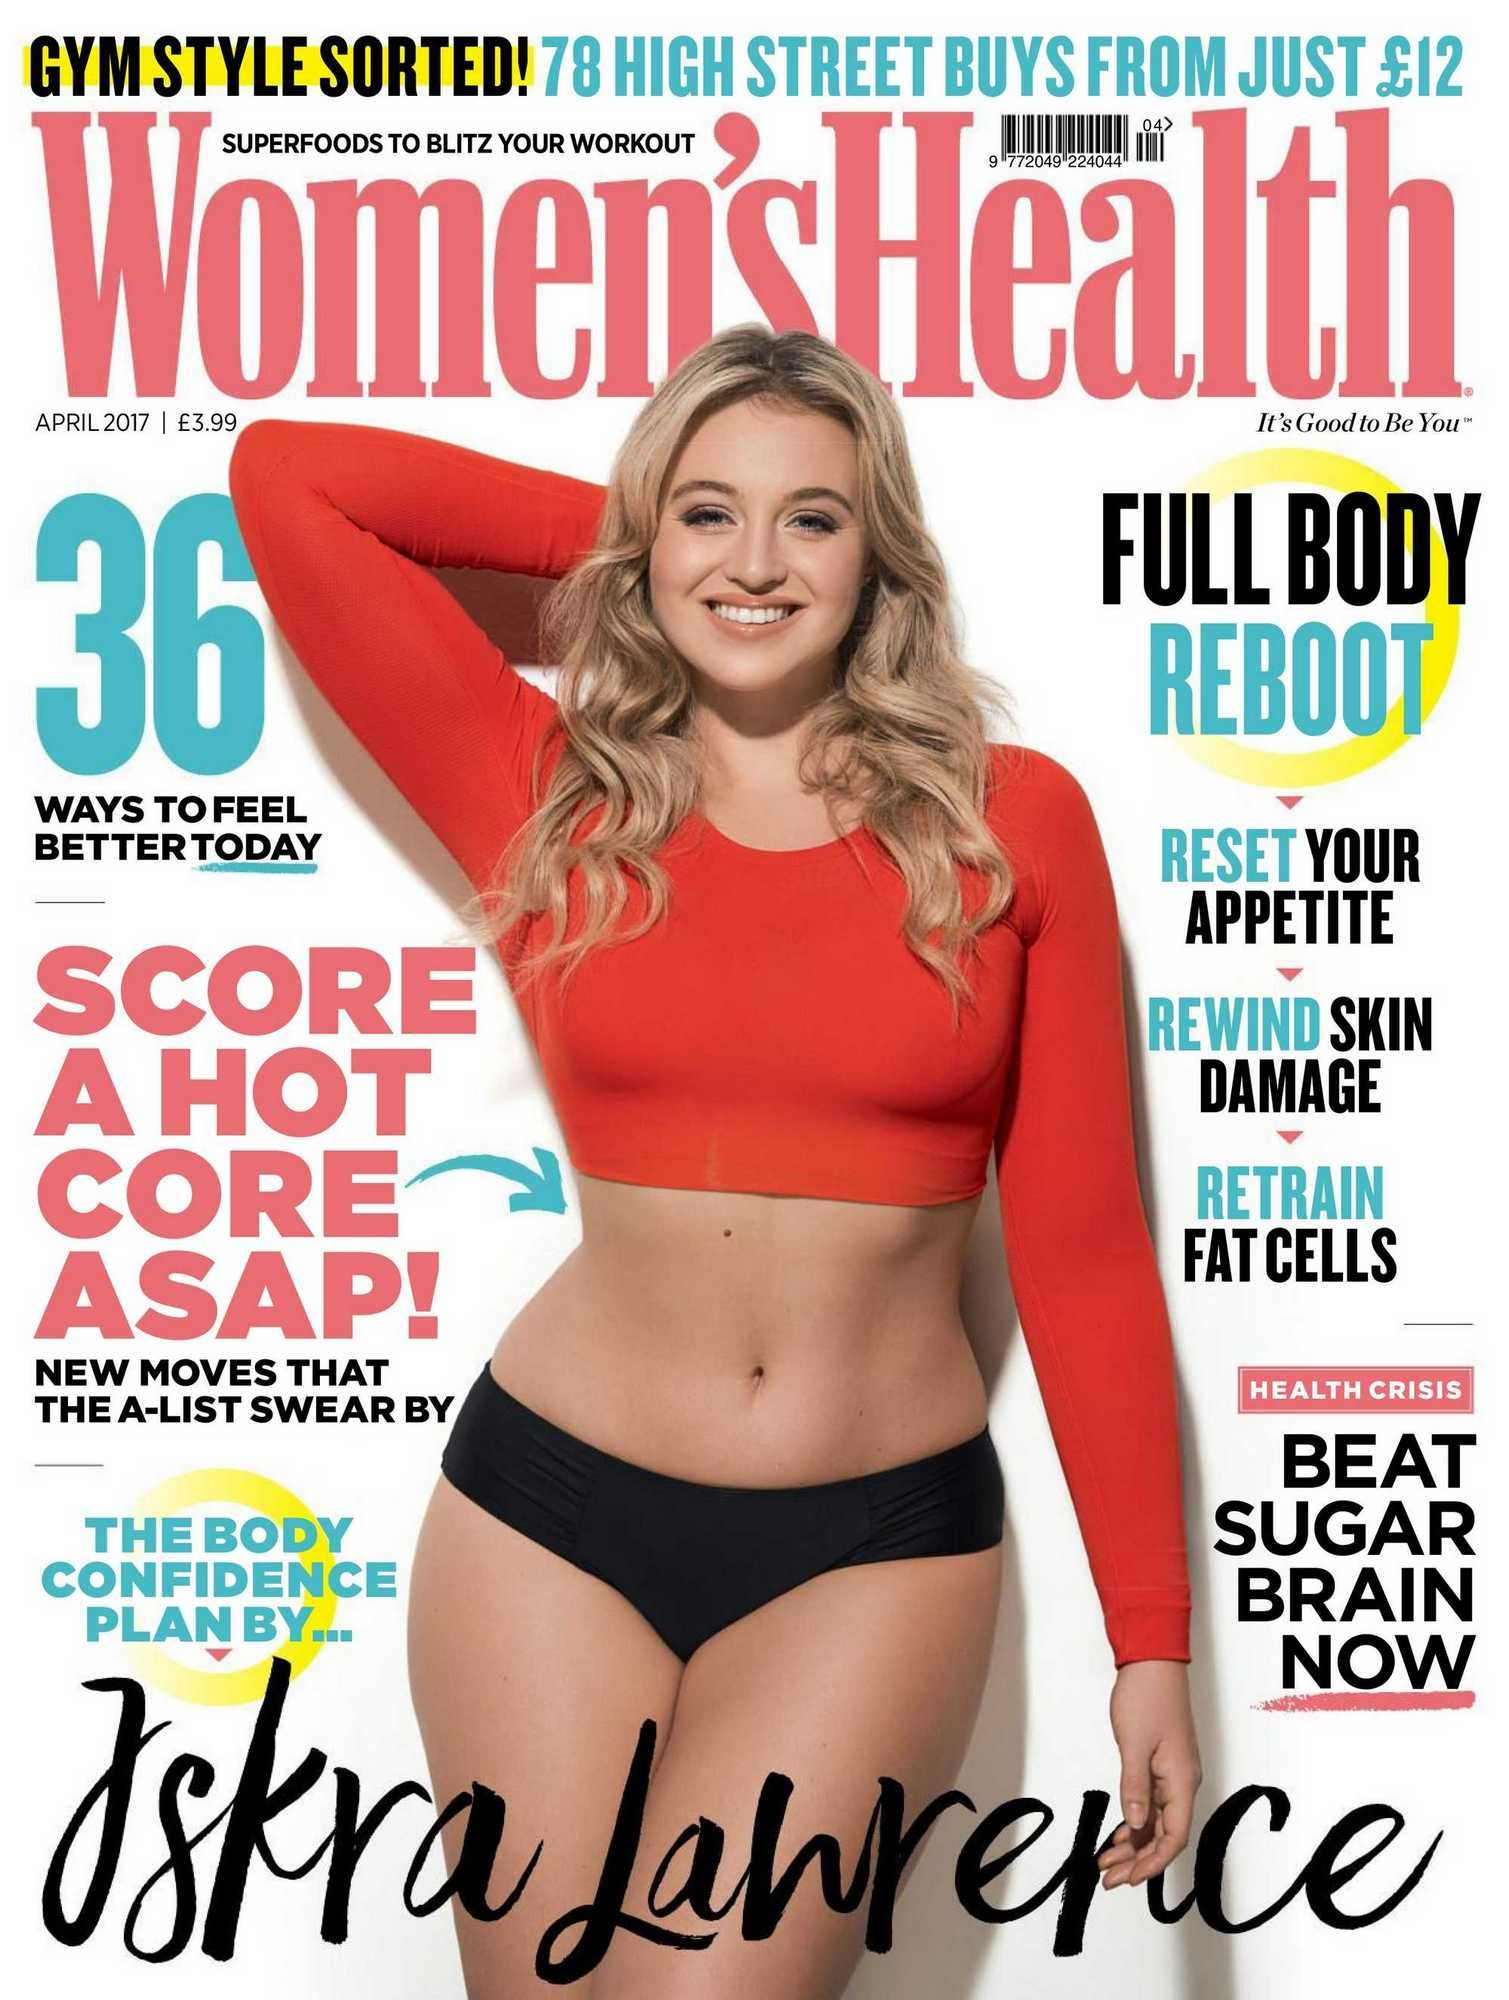 Gina carano diet plan and workout routine healthy celeb - Iskra Lawrence Women S Health Uk April 2017 Elite Girl Squad The Best Celebrity